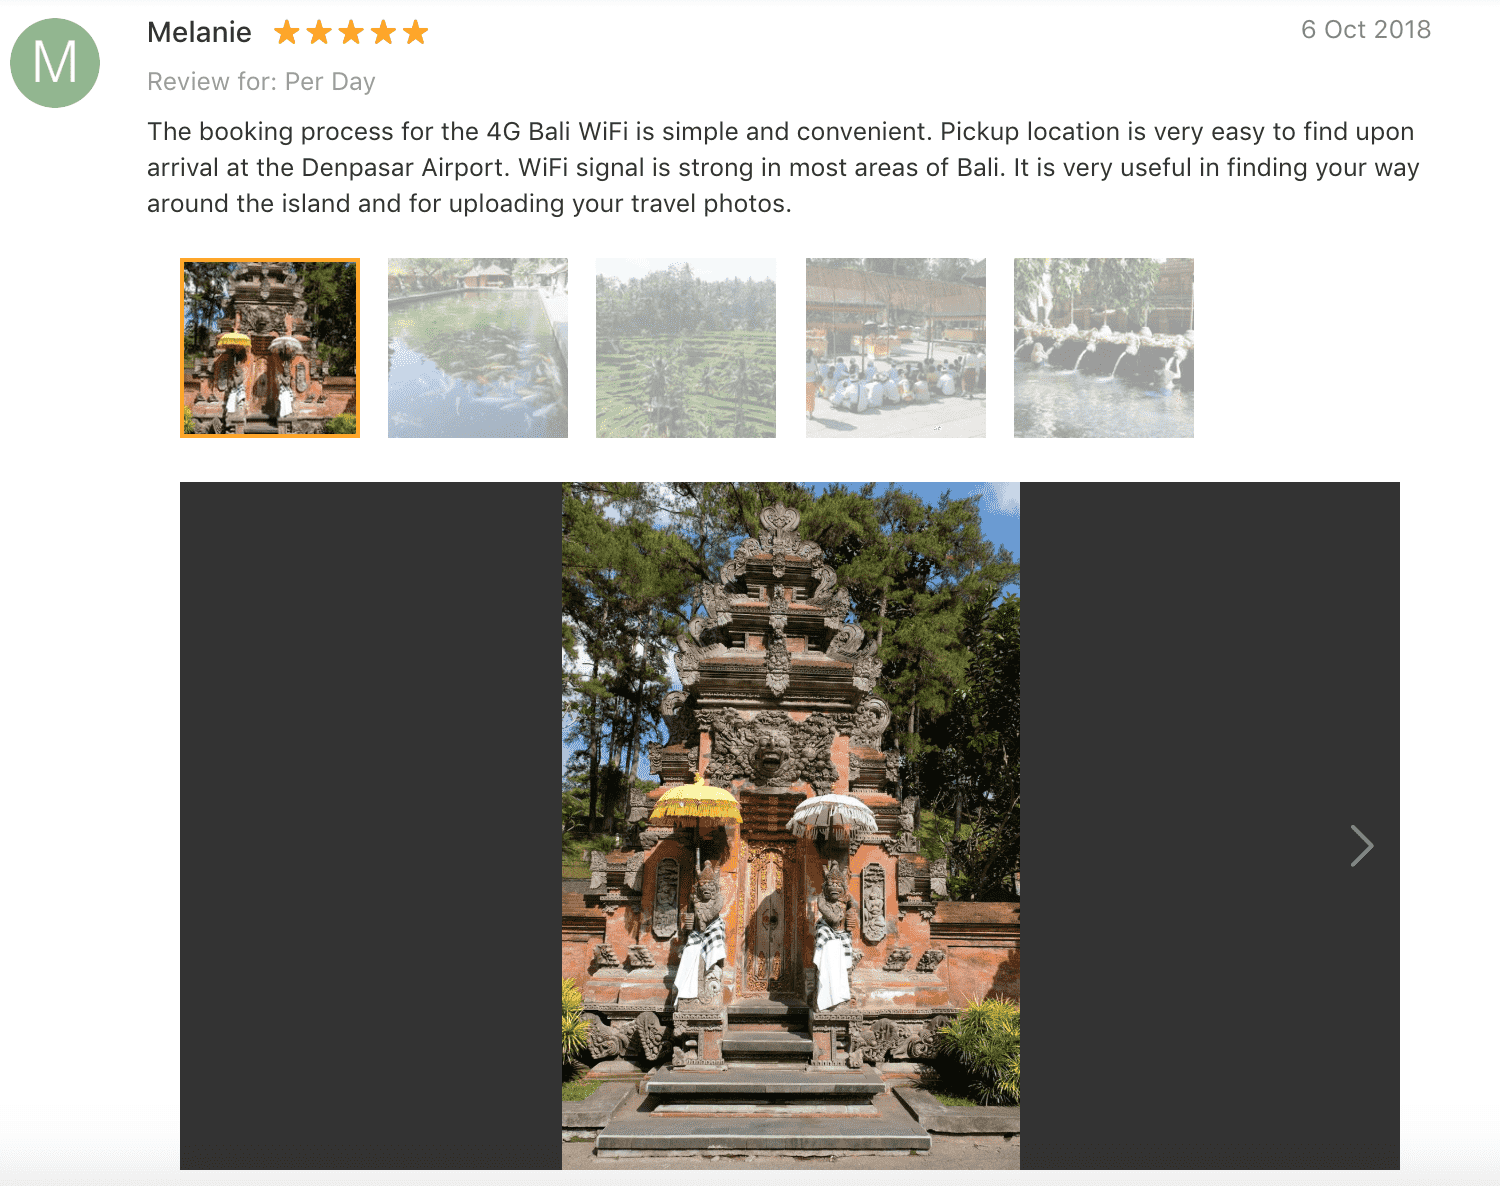 'The booking process for the 4G Bali WiFi is simple and convenient. Pickup location is very easy to find upon arrival at the Denpasar Airport. WiFi signal is strong in most areas of Bali. It is very useful in finding your way around the island and for uploading your travel photos.' - Bali Pocket Wifi Klook: Review